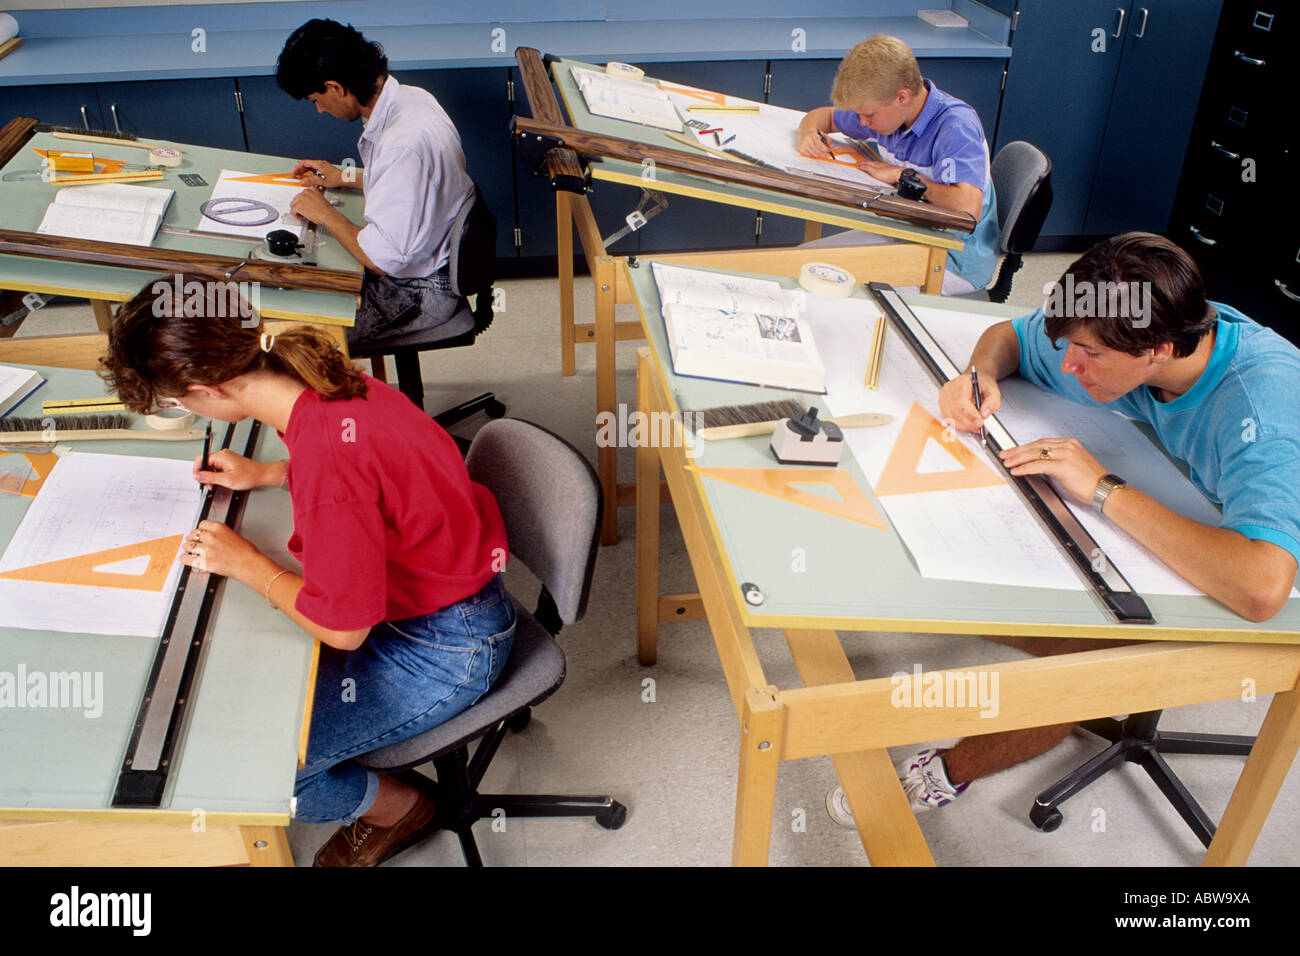 Stock Photo   Students Boys And Girls In High School 11th Grade Drafting  Class With Draft Tables Working In School